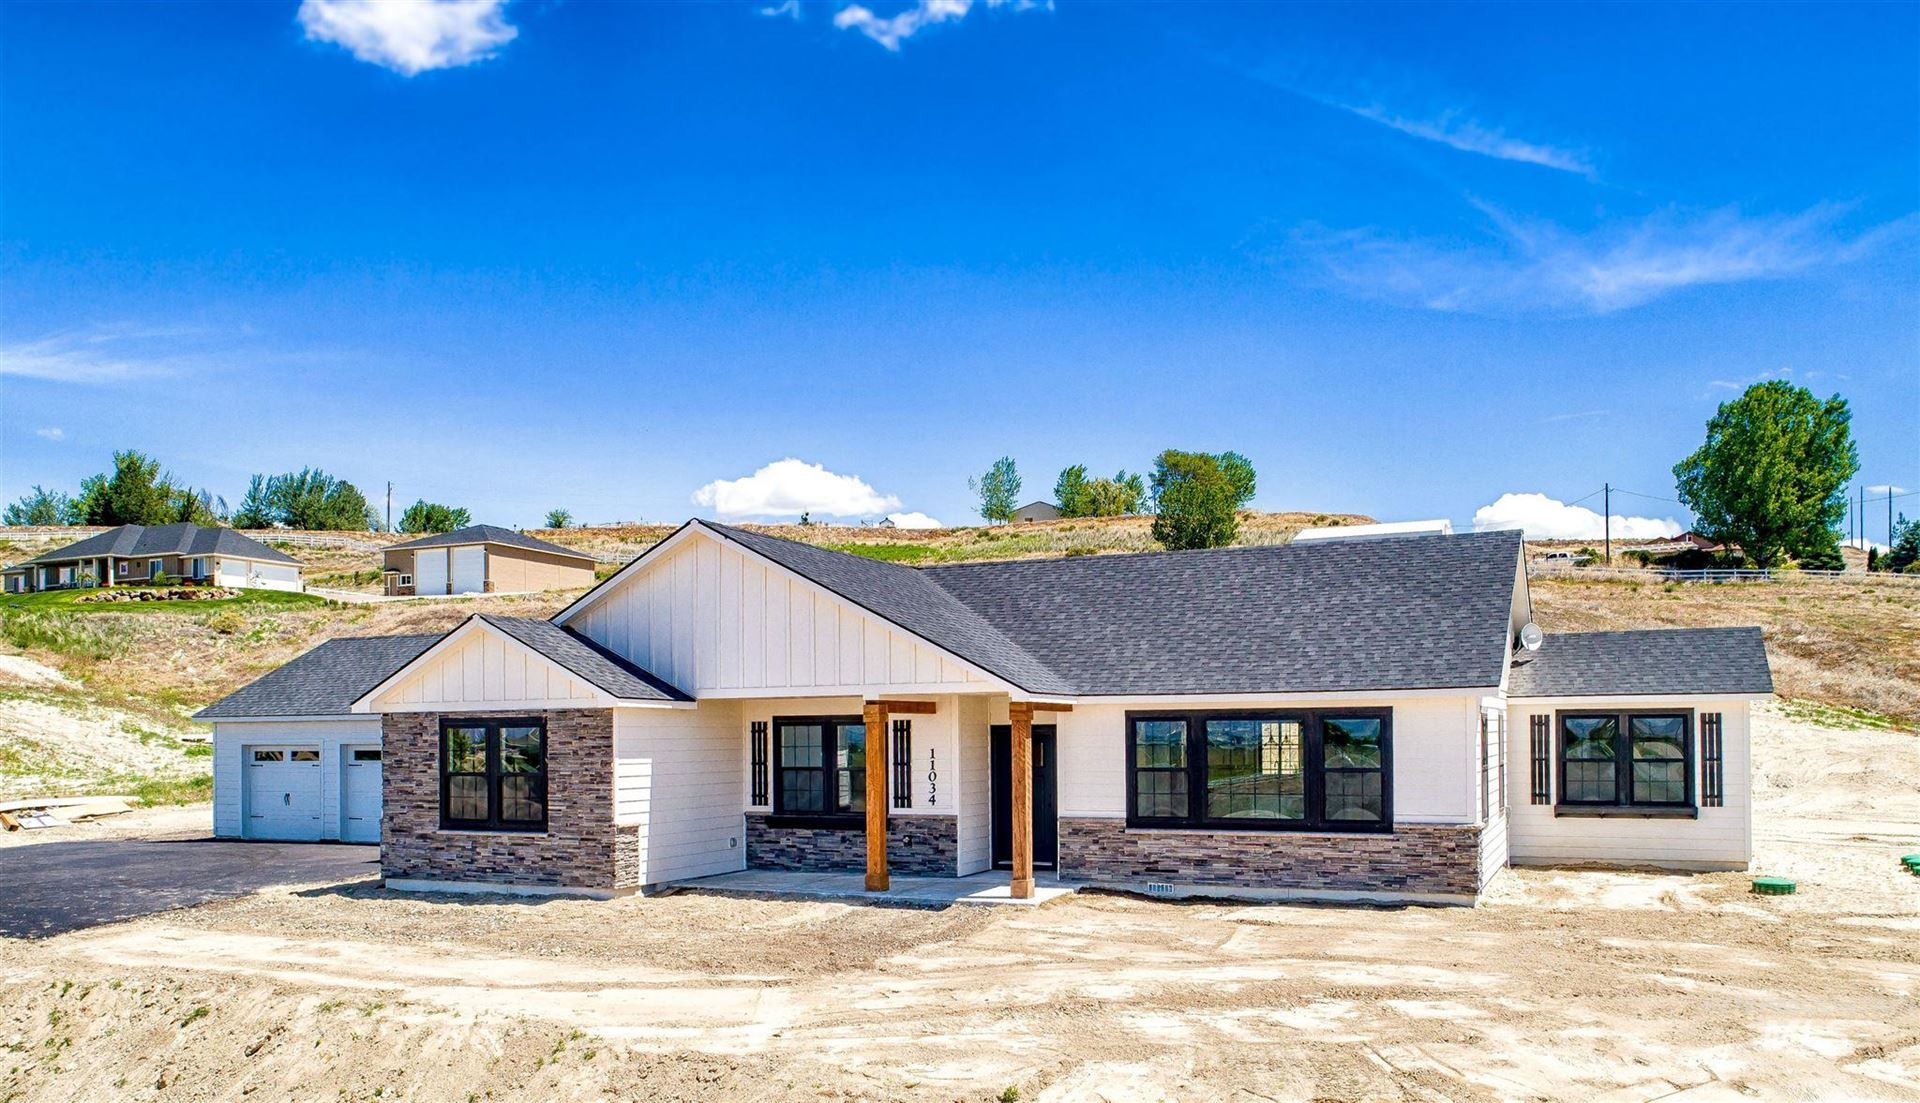 Photo of 11034 W River Rd, Caldwell, ID 83607 (MLS # 98768437)